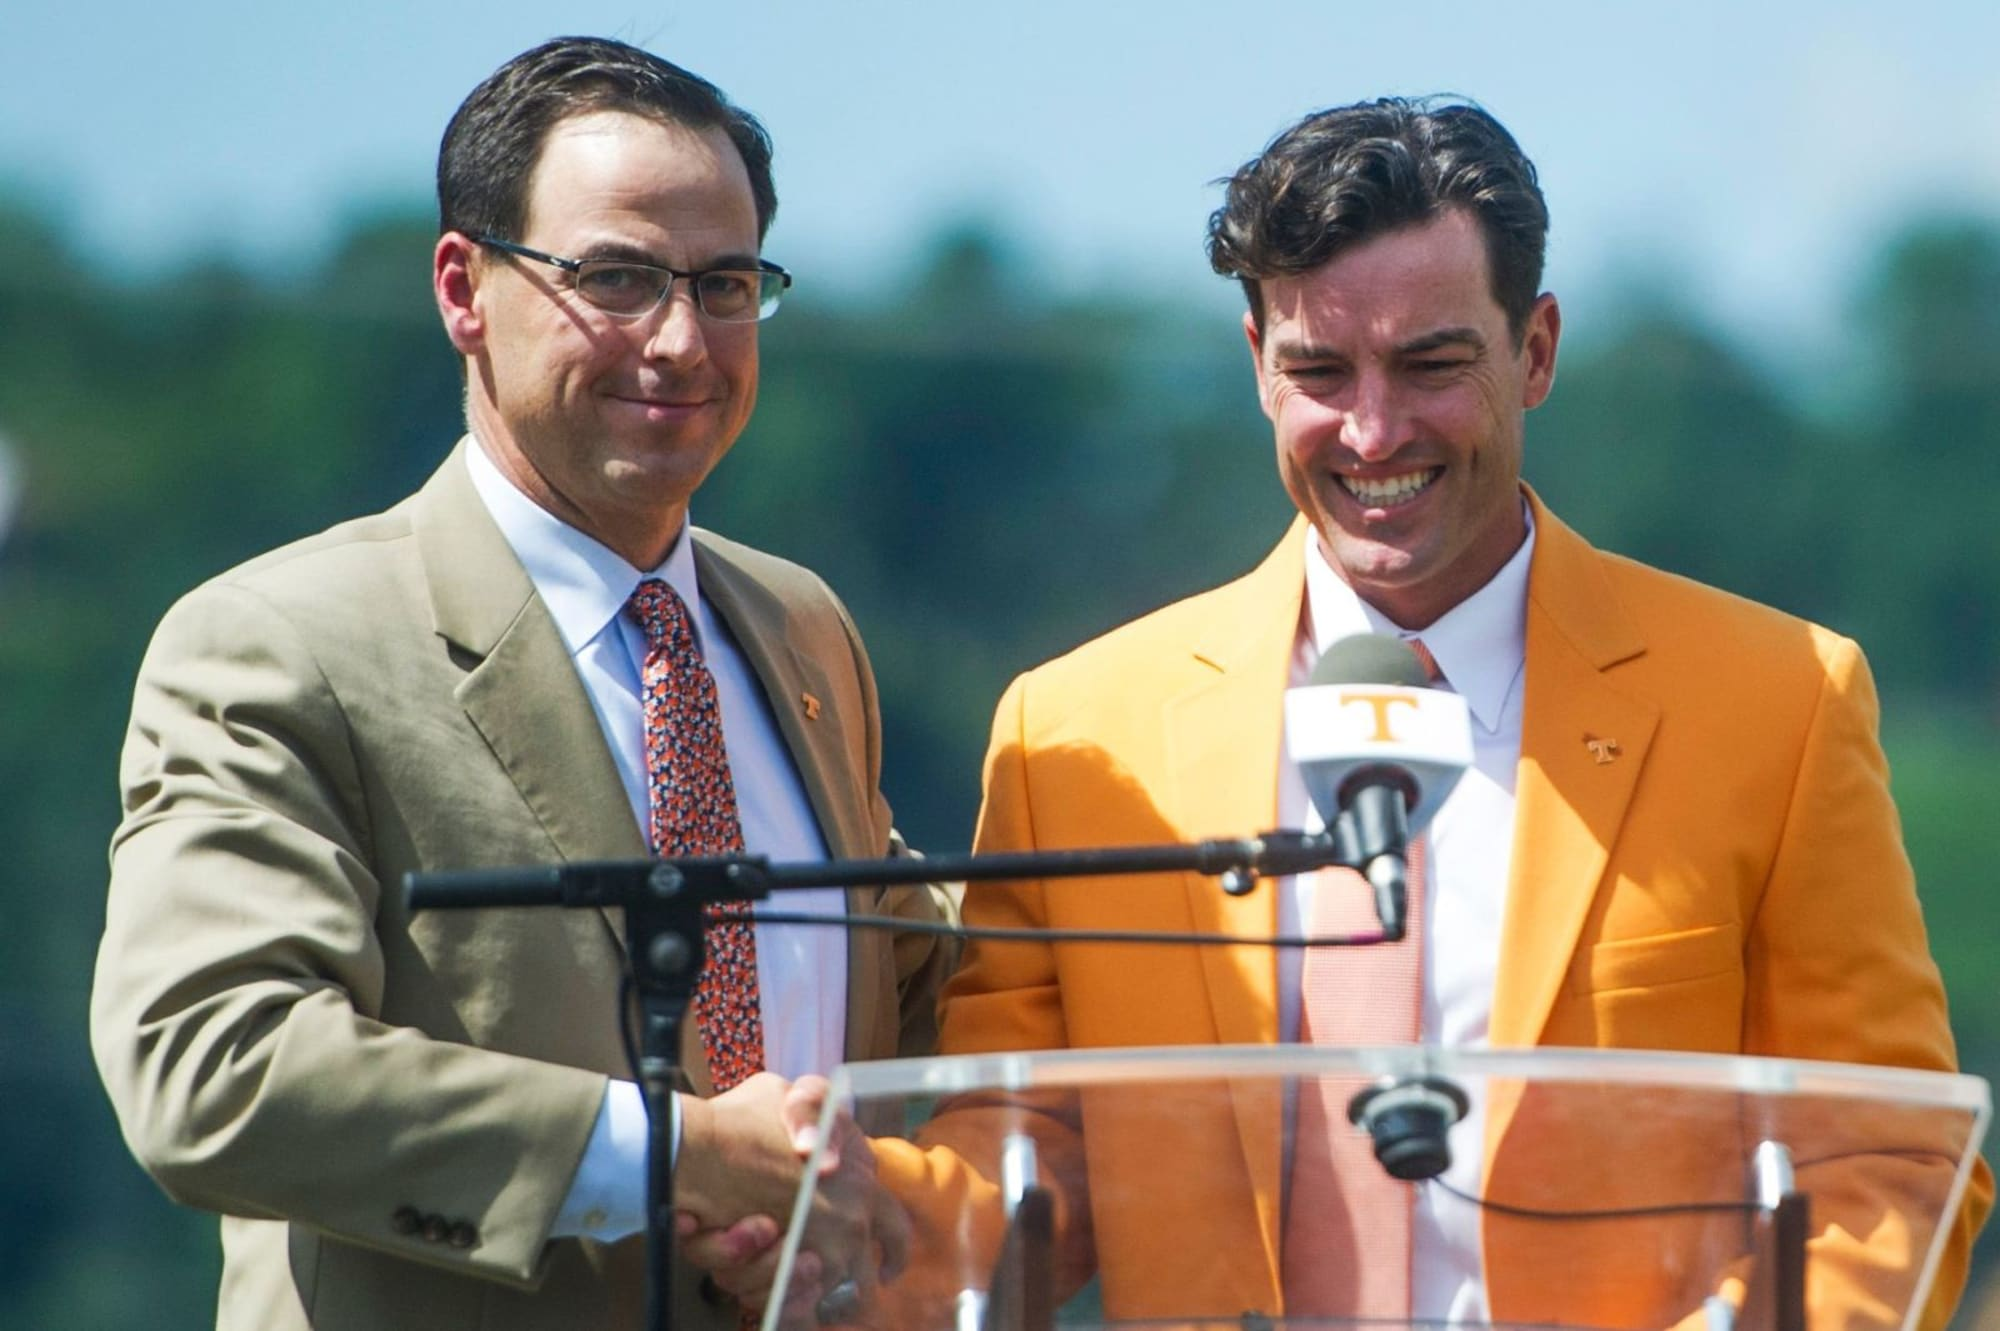 Tennessee Vols: Former AD John Currie appears vindicated. He isn't.